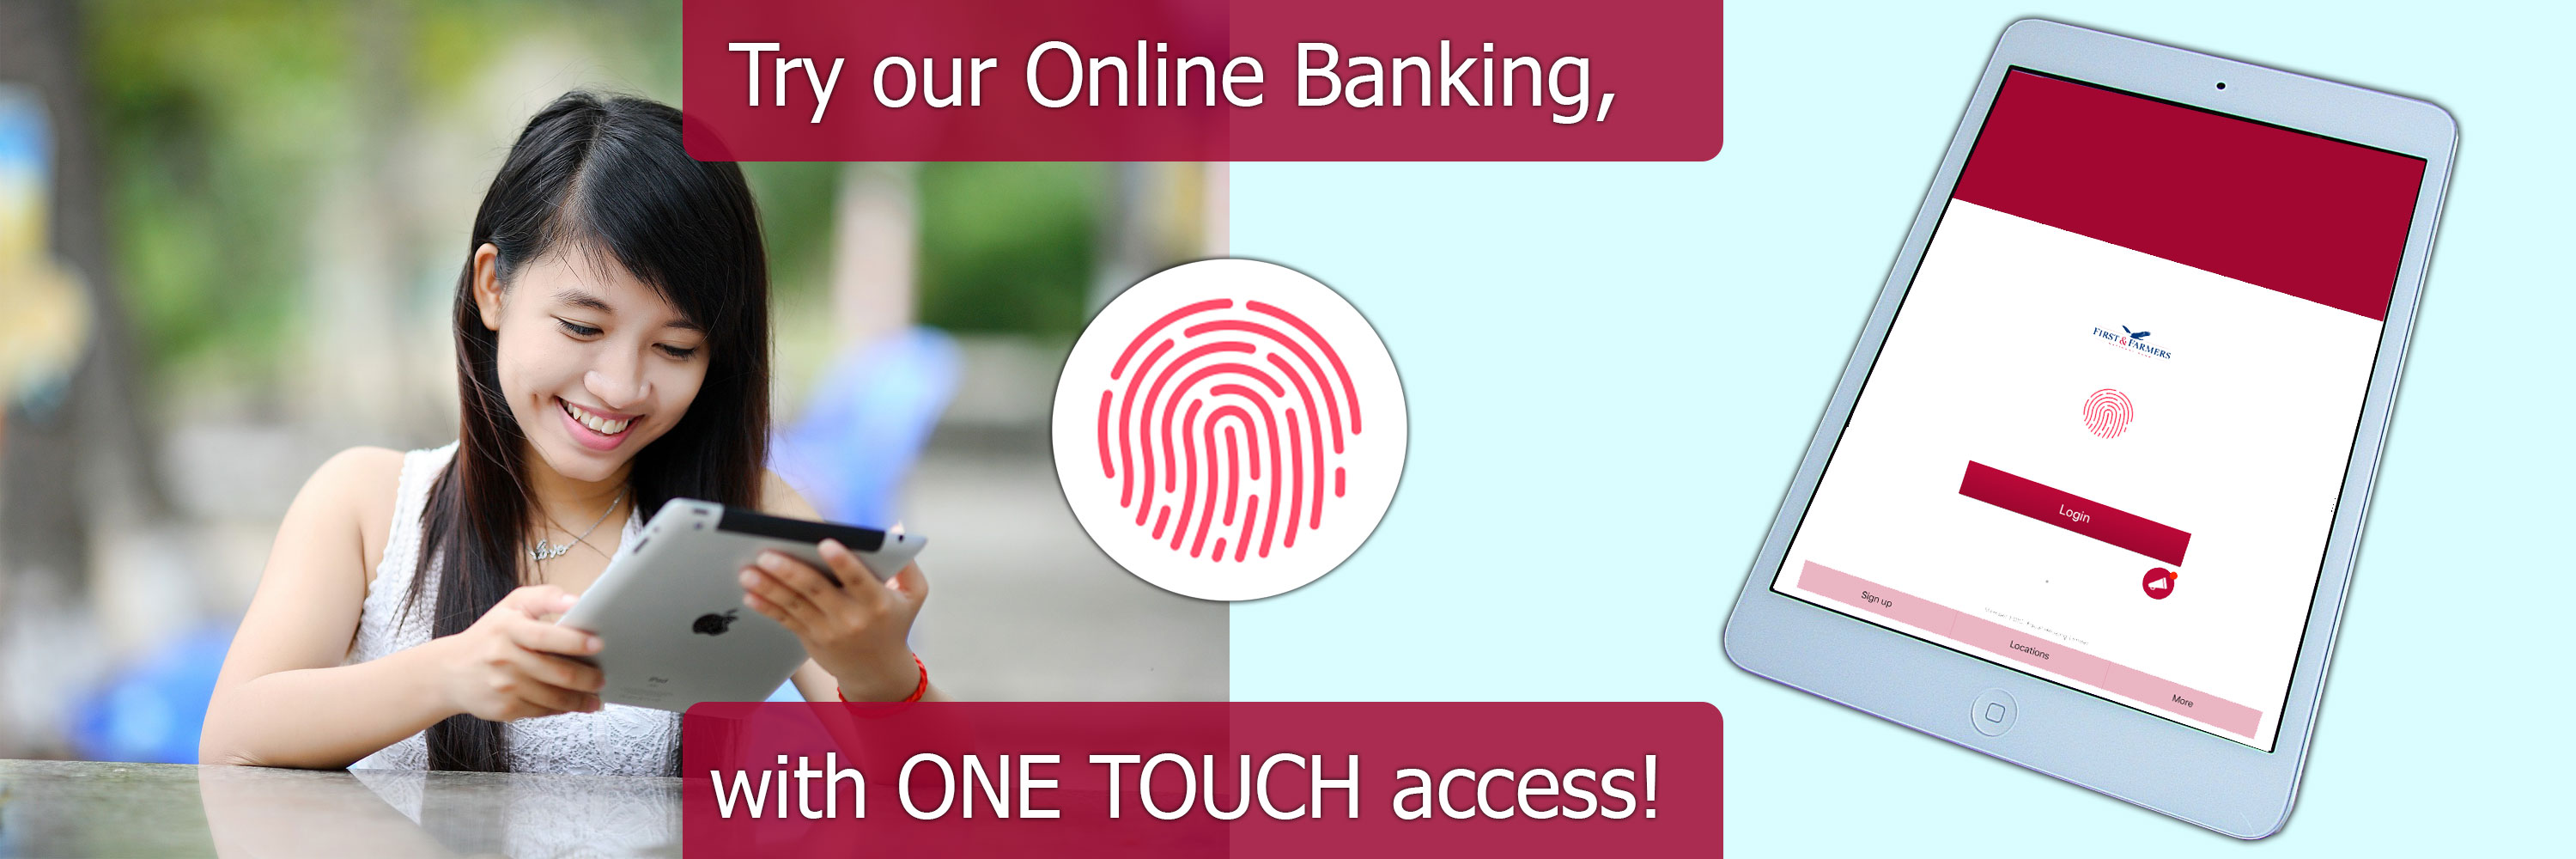 Try our Online Banking with one touch access!